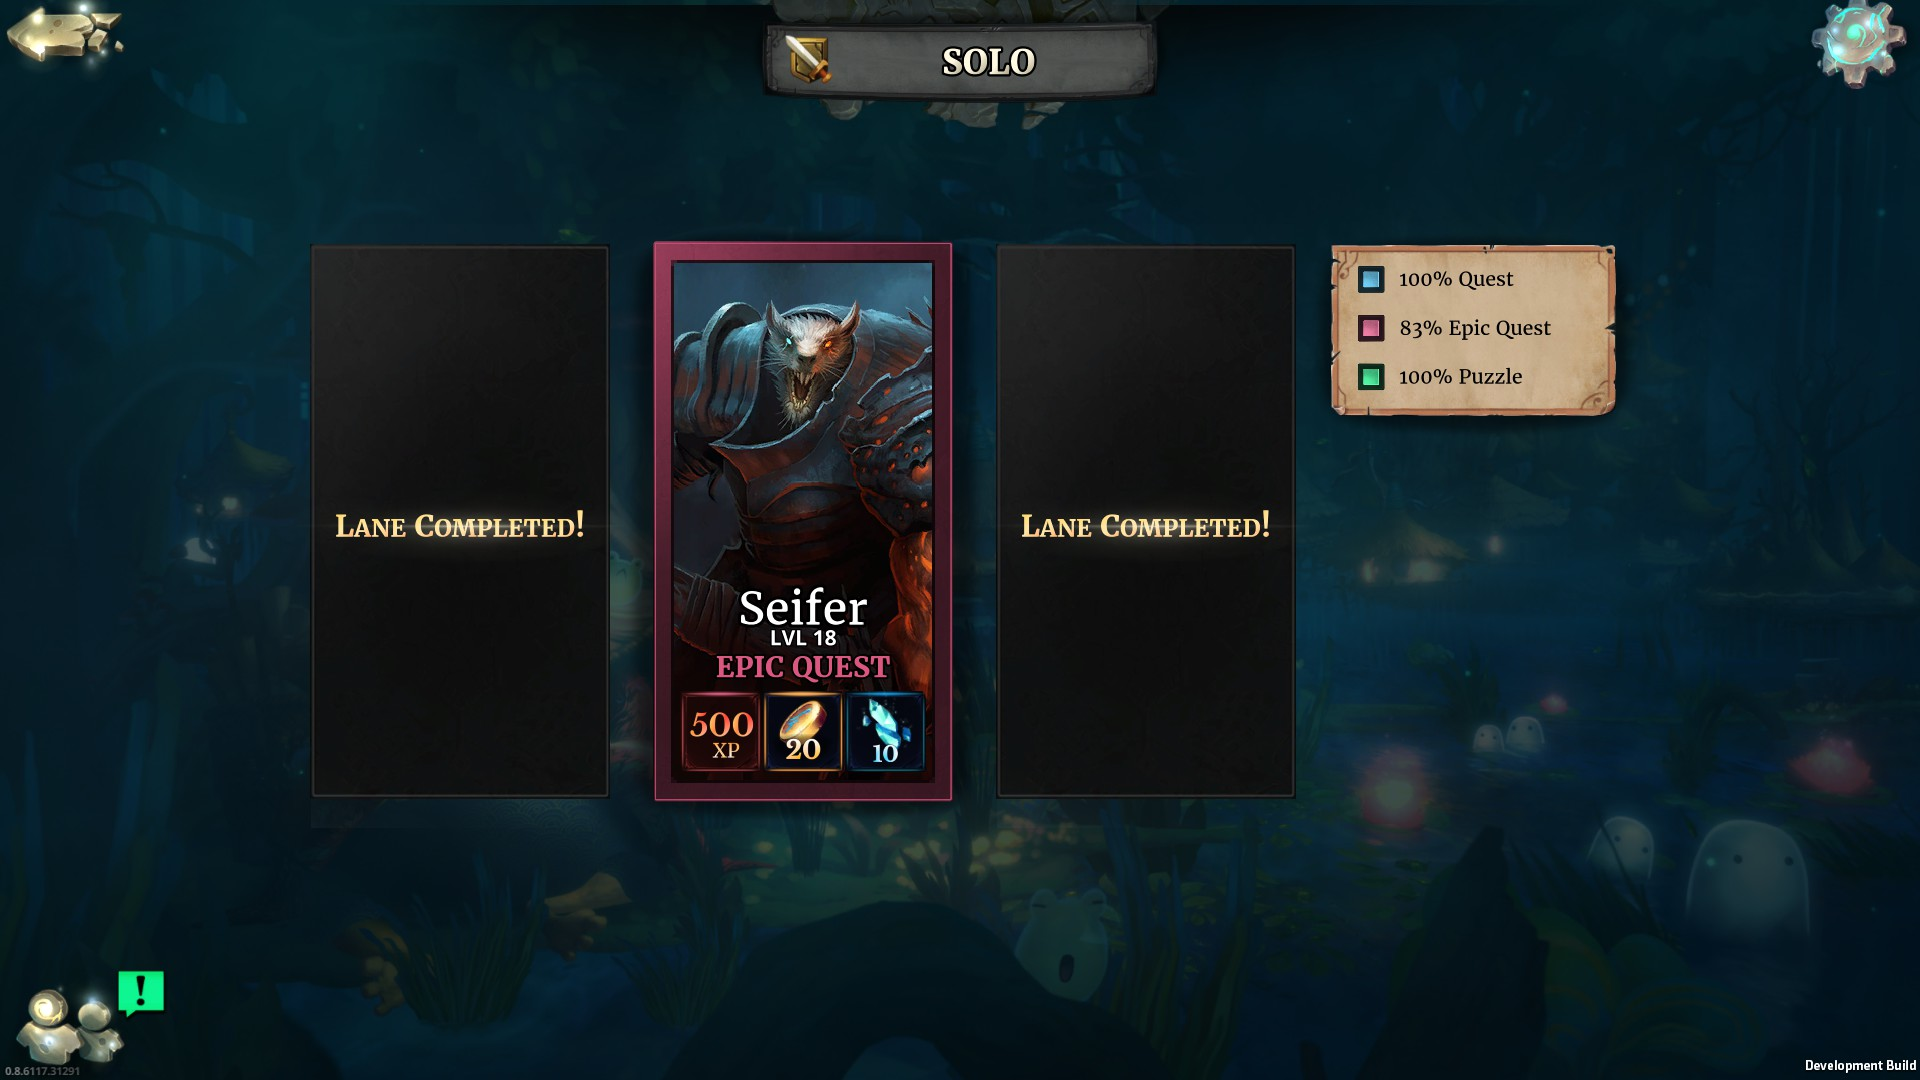 how to beat Seifer lvl 18, epic quest? :: Faeria General